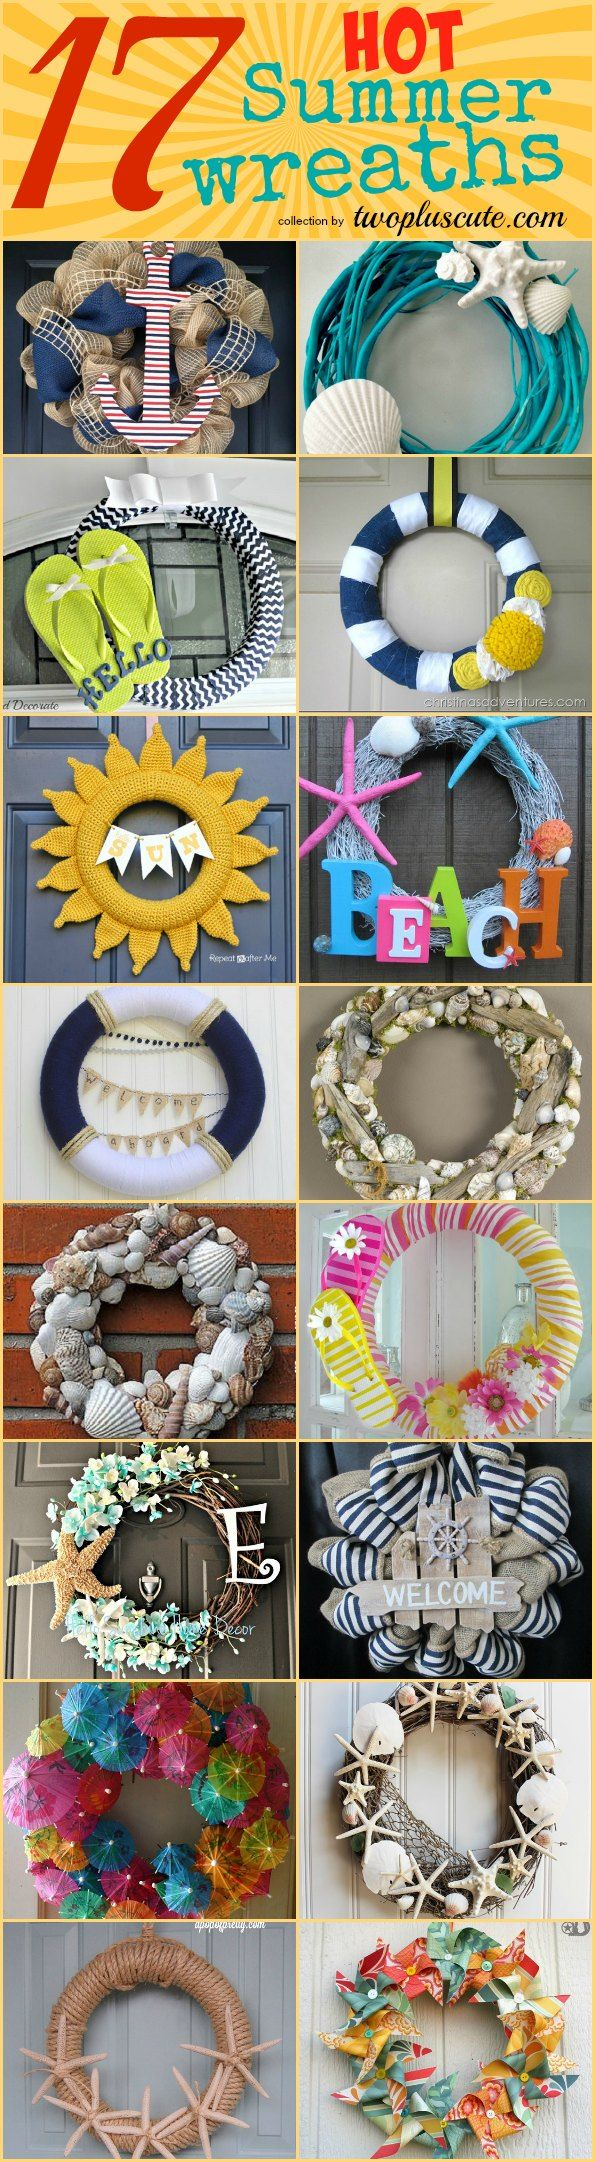 best 25+ diy summer decorations ideas on pinterest | summer diy